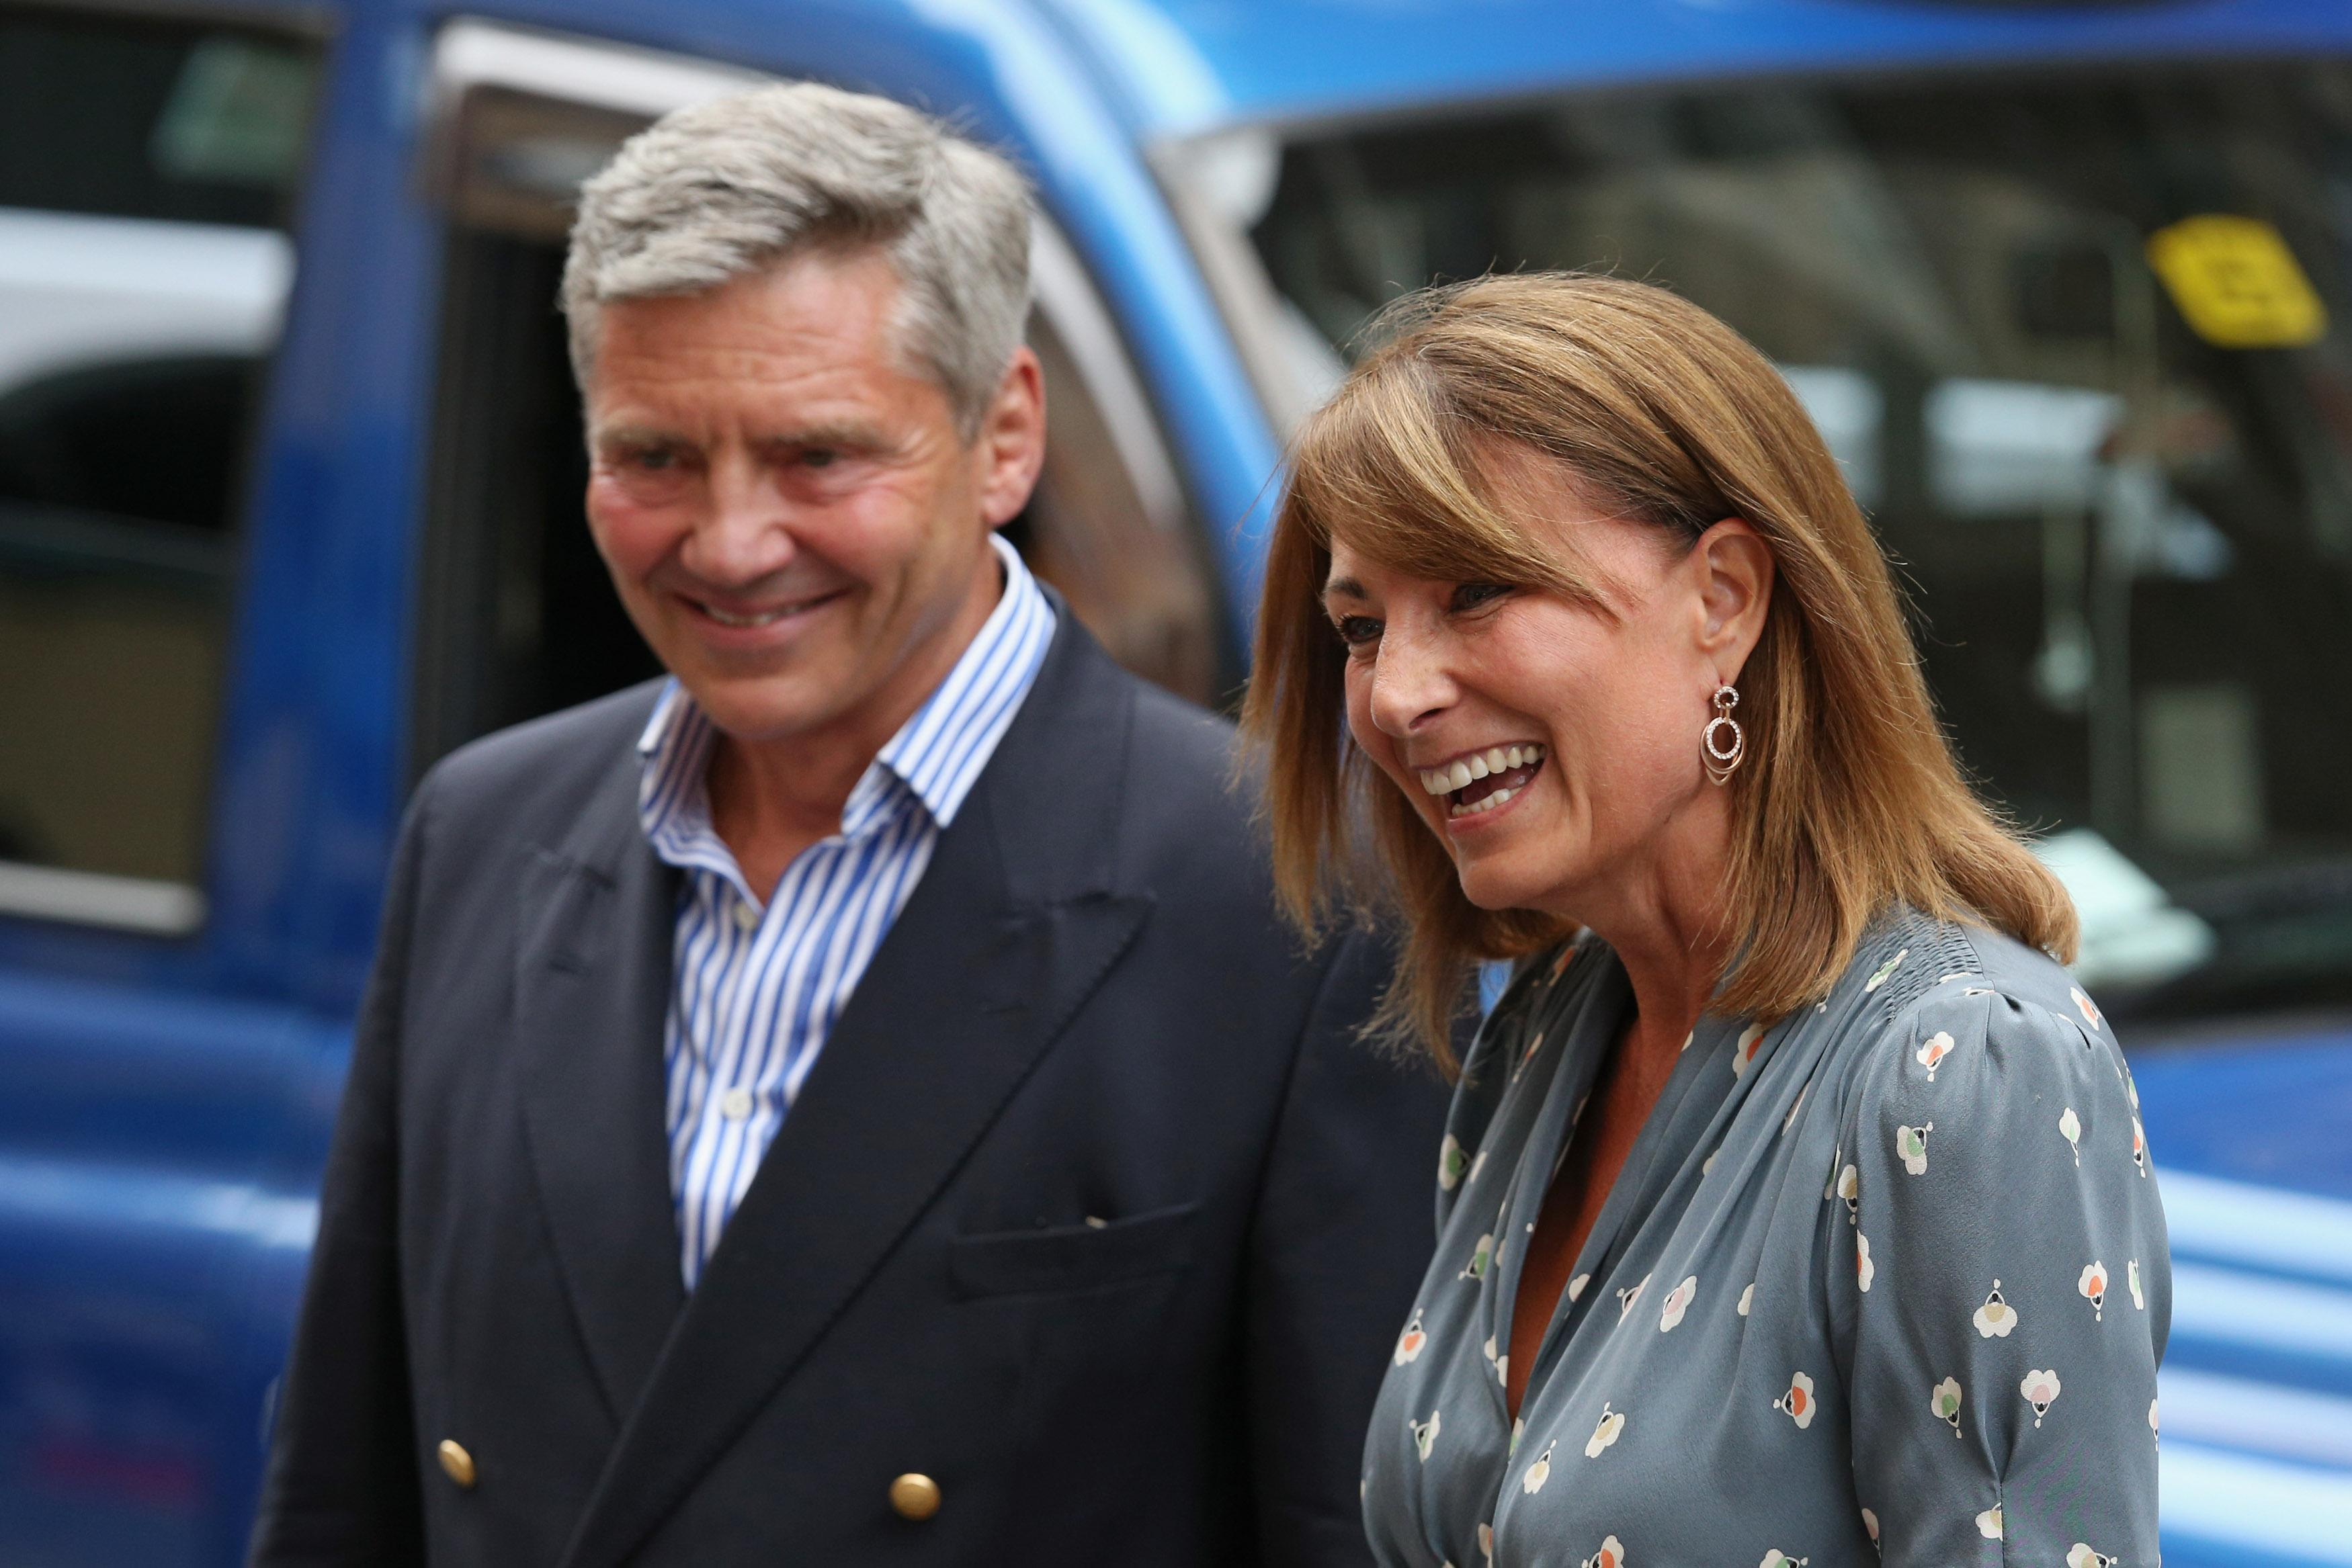 Are Kate Middletons Parents Headed for Divorce?